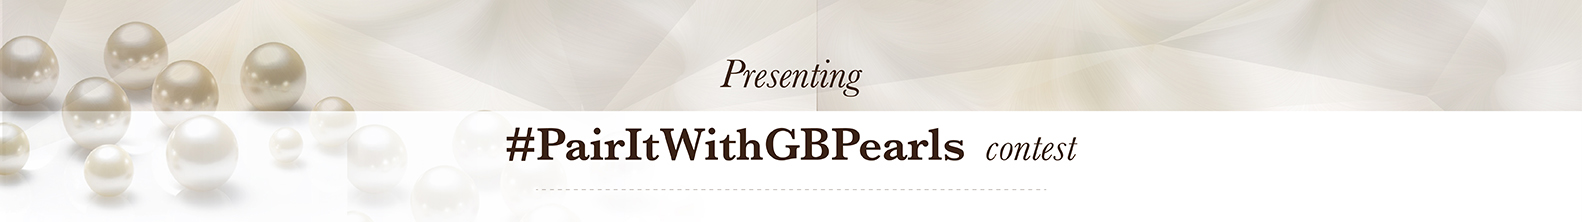 #PairItWithGBPearls